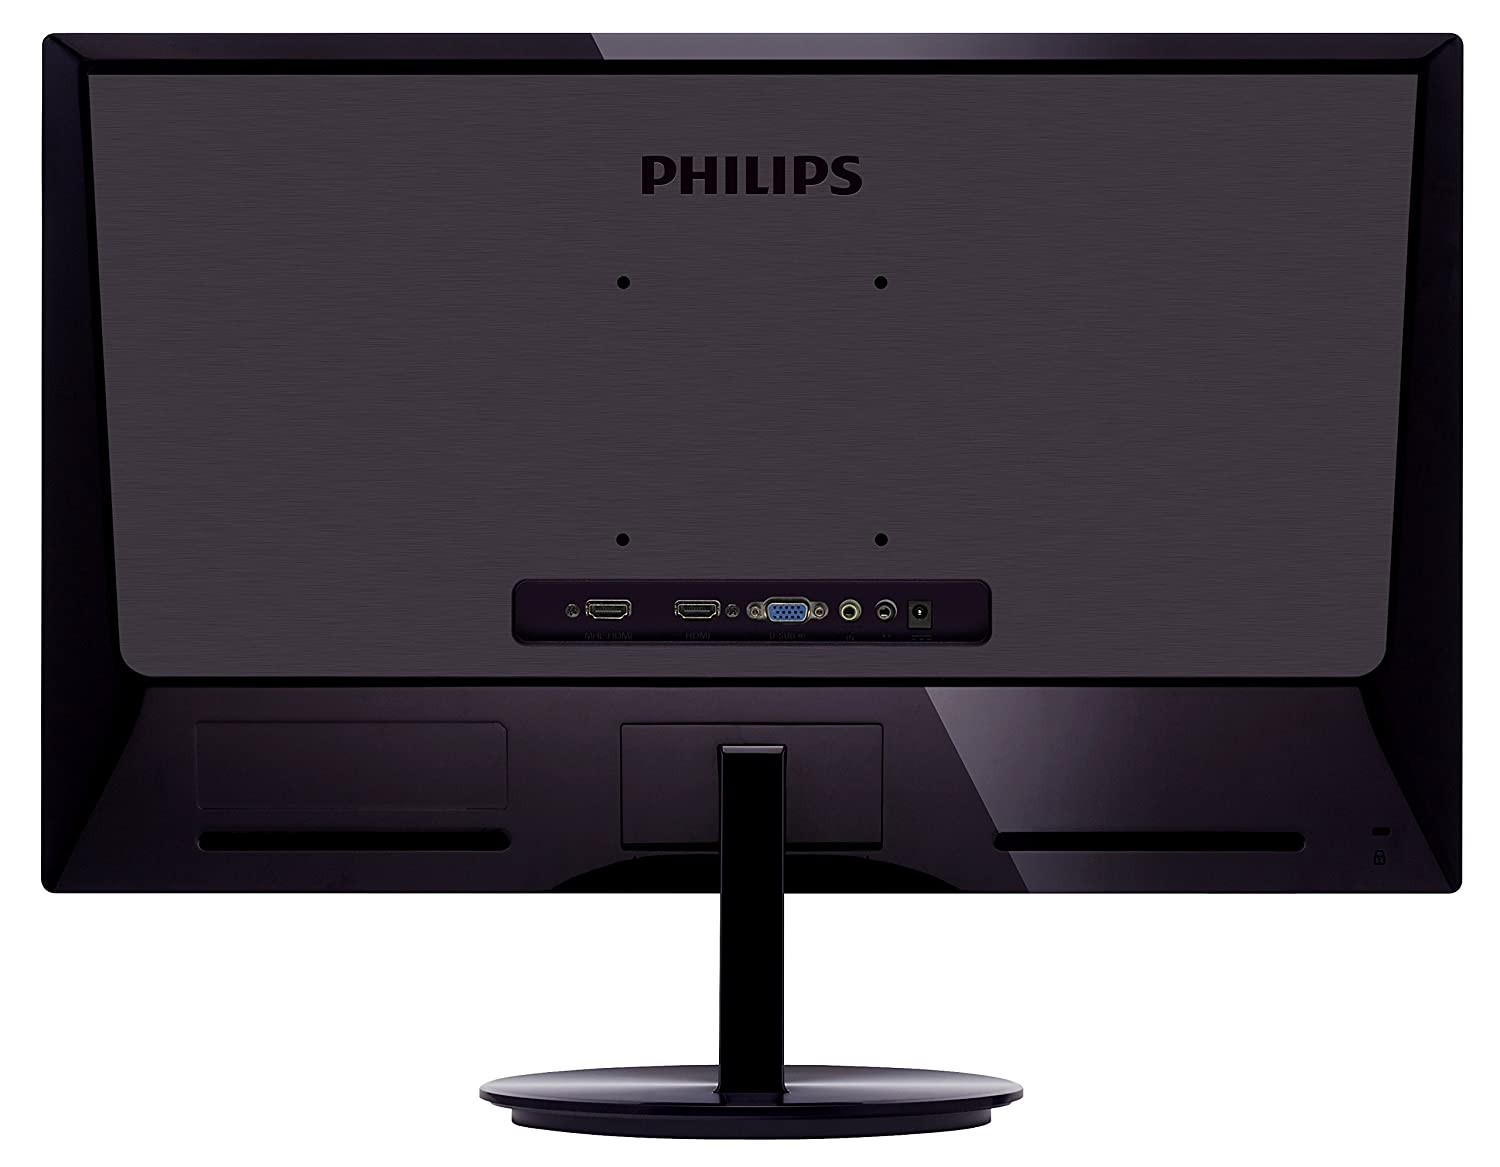 Philips 284E5QHAD LCD Monitor Windows 8 X64 Driver Download